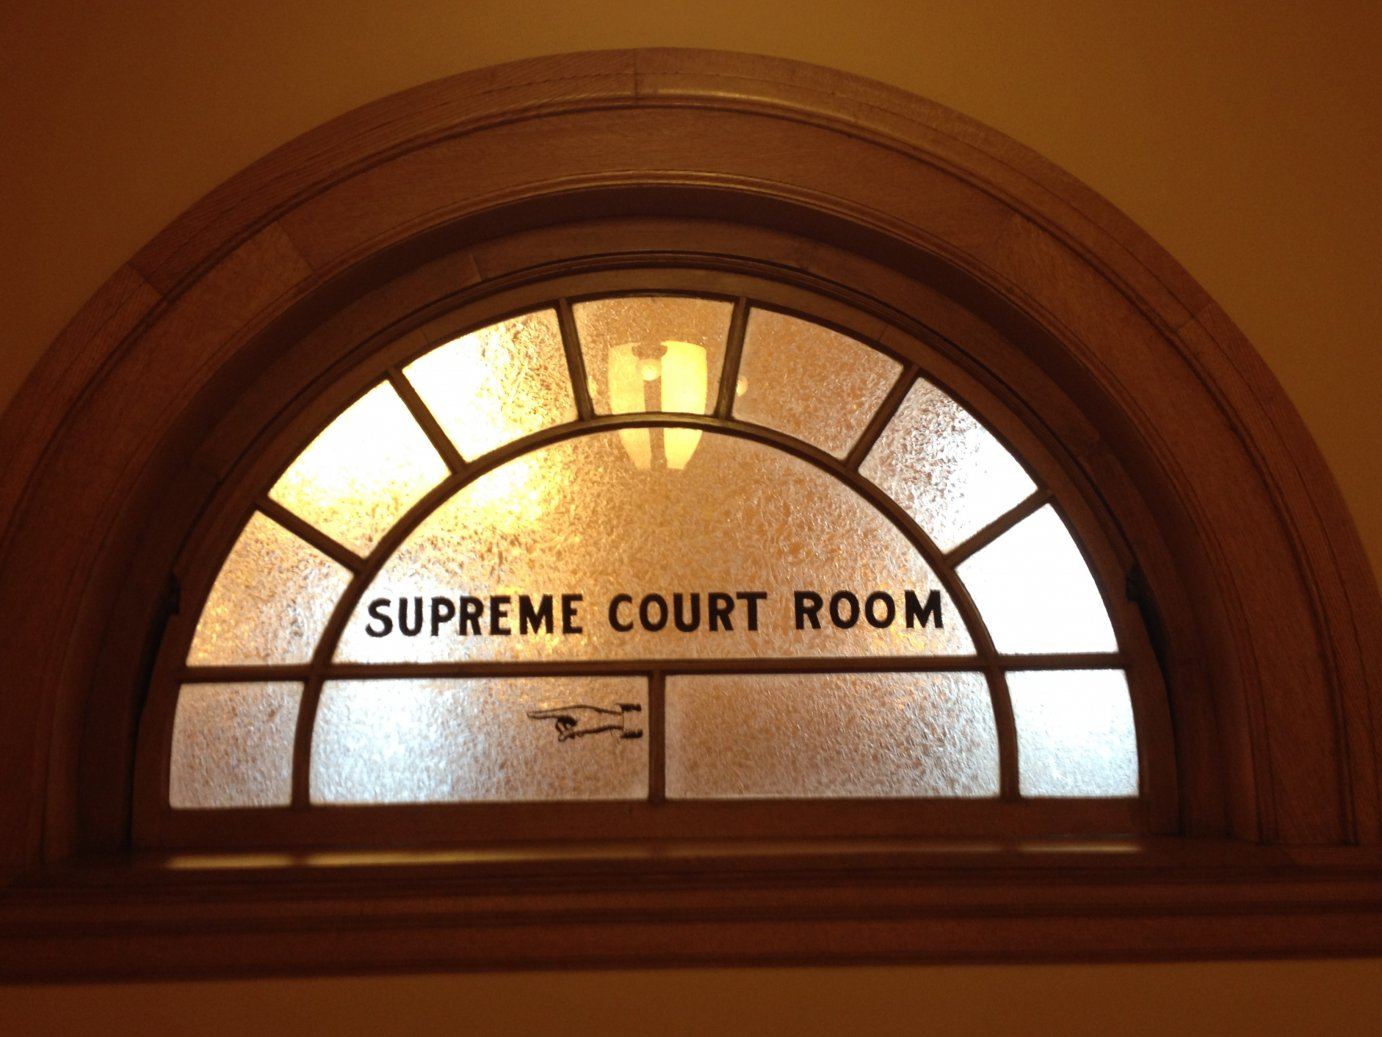 A window to the old Kansas Supreme Court room in the Kansas Statehouse.  The high court now resides across the street from the Statehouse, inside the Kansas Judicial Center.  (Photo by J. Schafer)